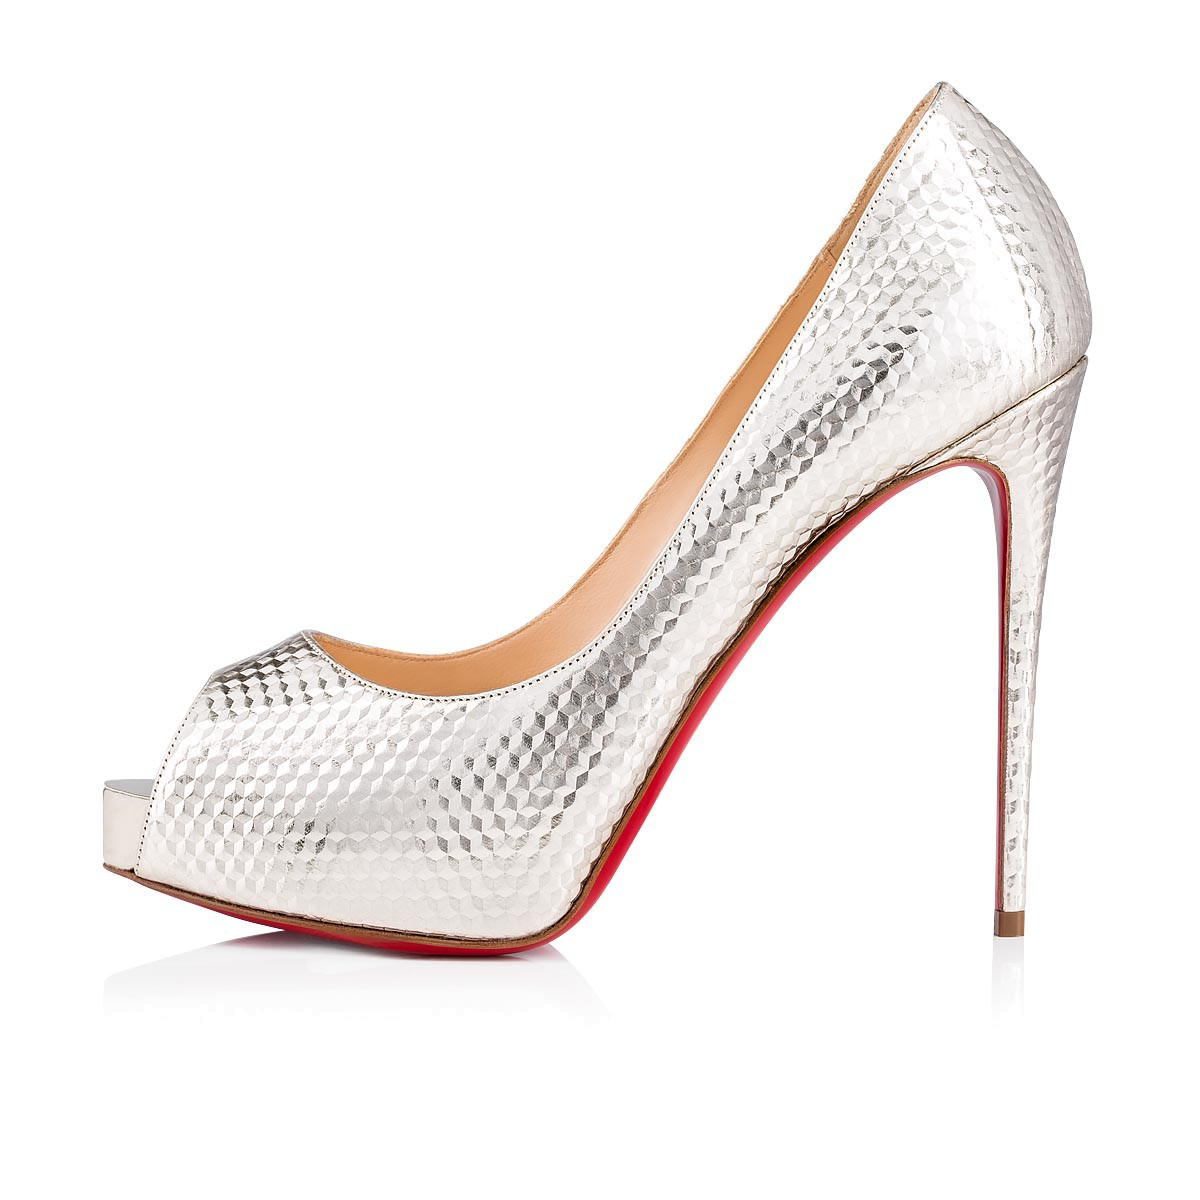 鞋履 - New Very Prive 120 Calf - Christian Louboutin